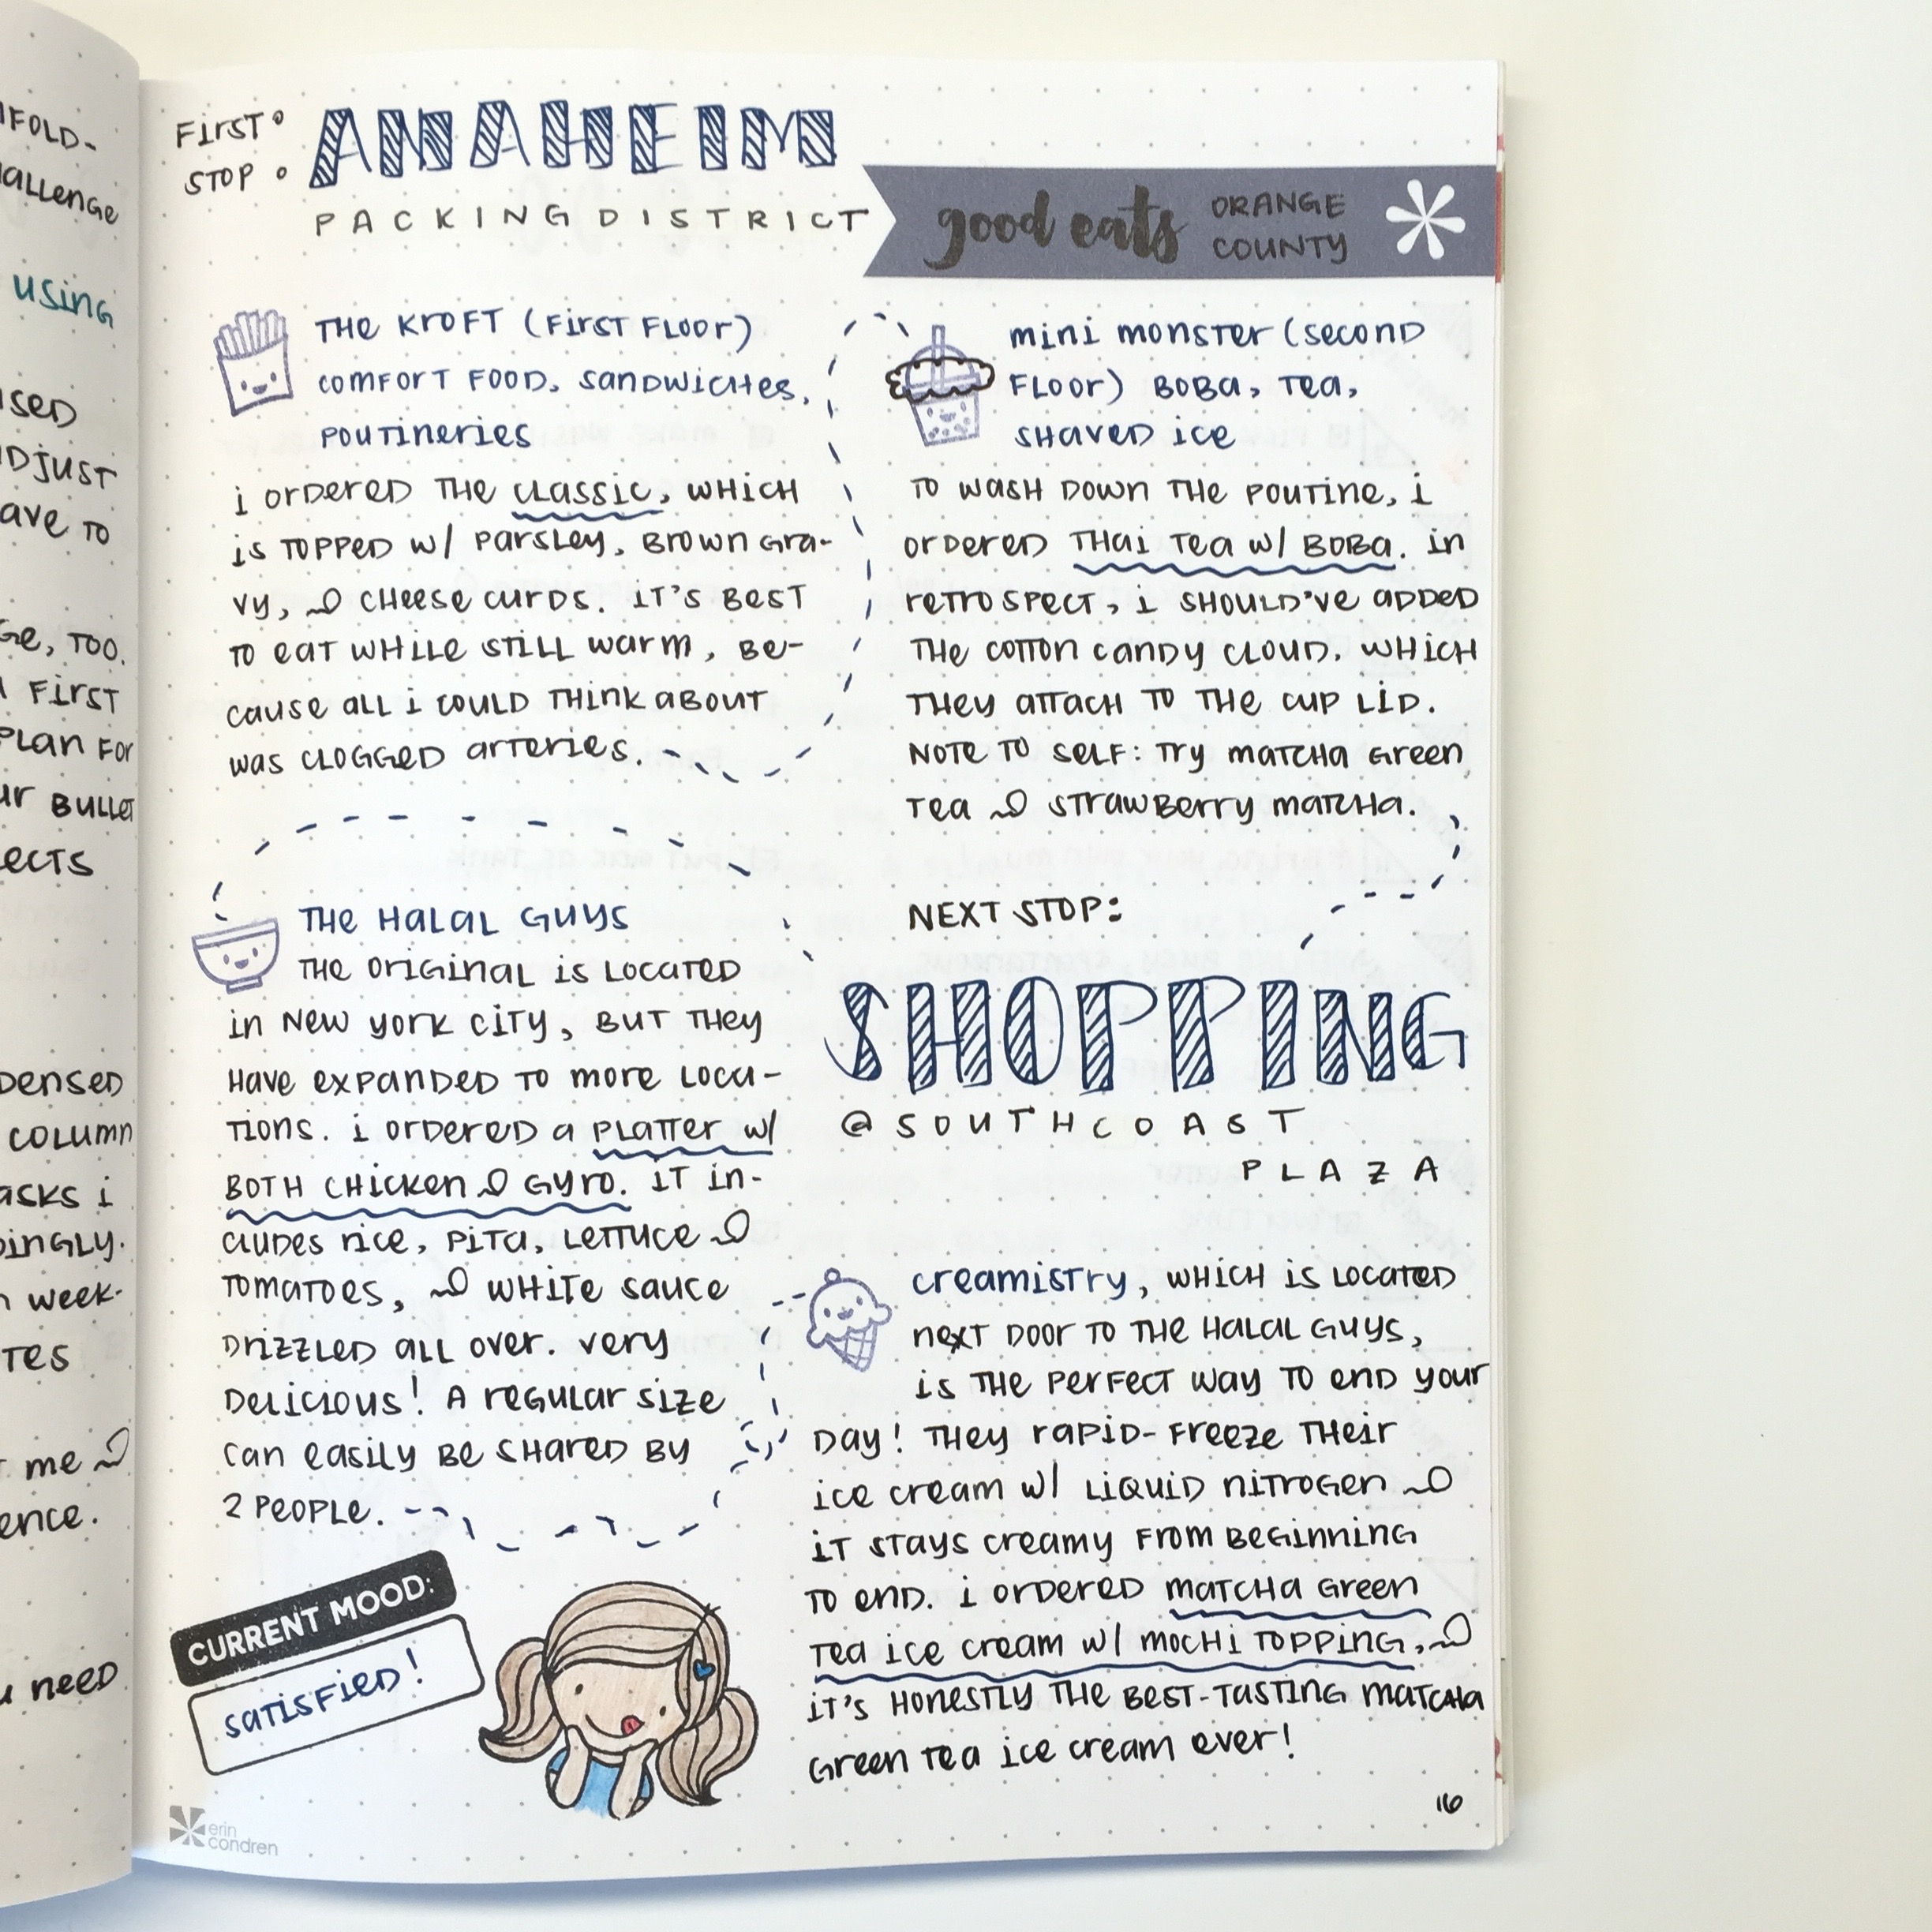 photo about Bullet Journal Dot Grid Printable titled Sharons Bullet Magazine Set up Recommendations Really Prints Paper